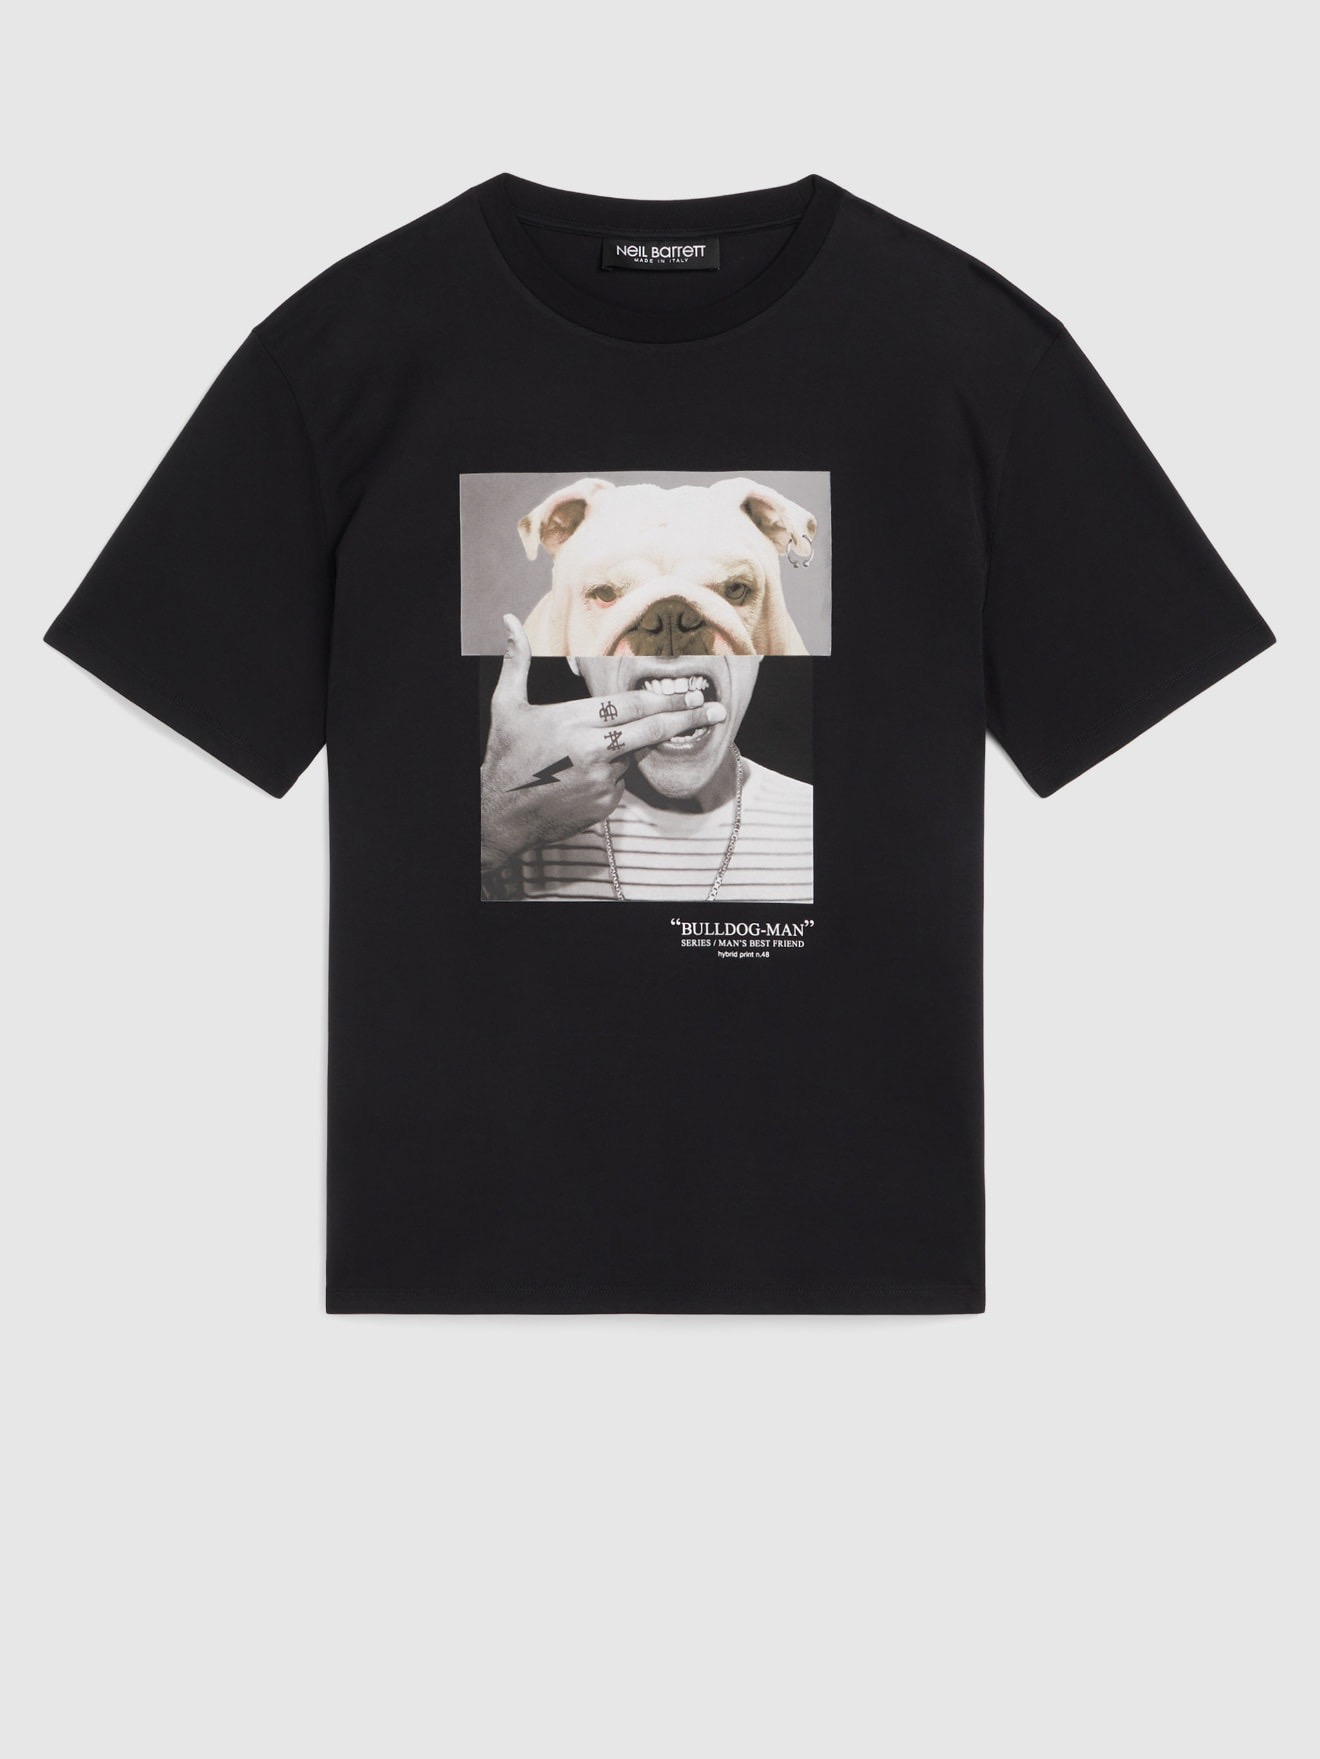 Bulldog/Man T-shirt